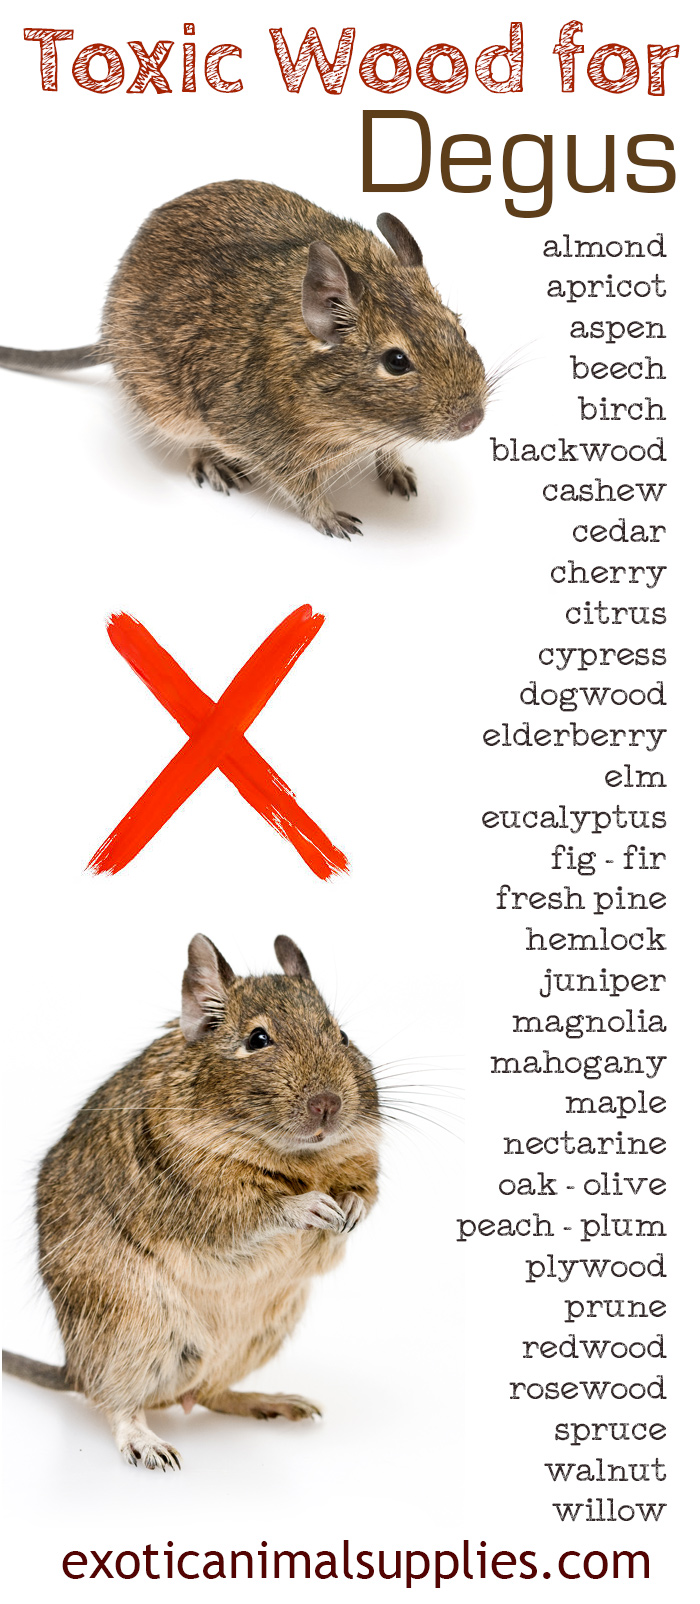 Complete List of Toxic Wood for Degus